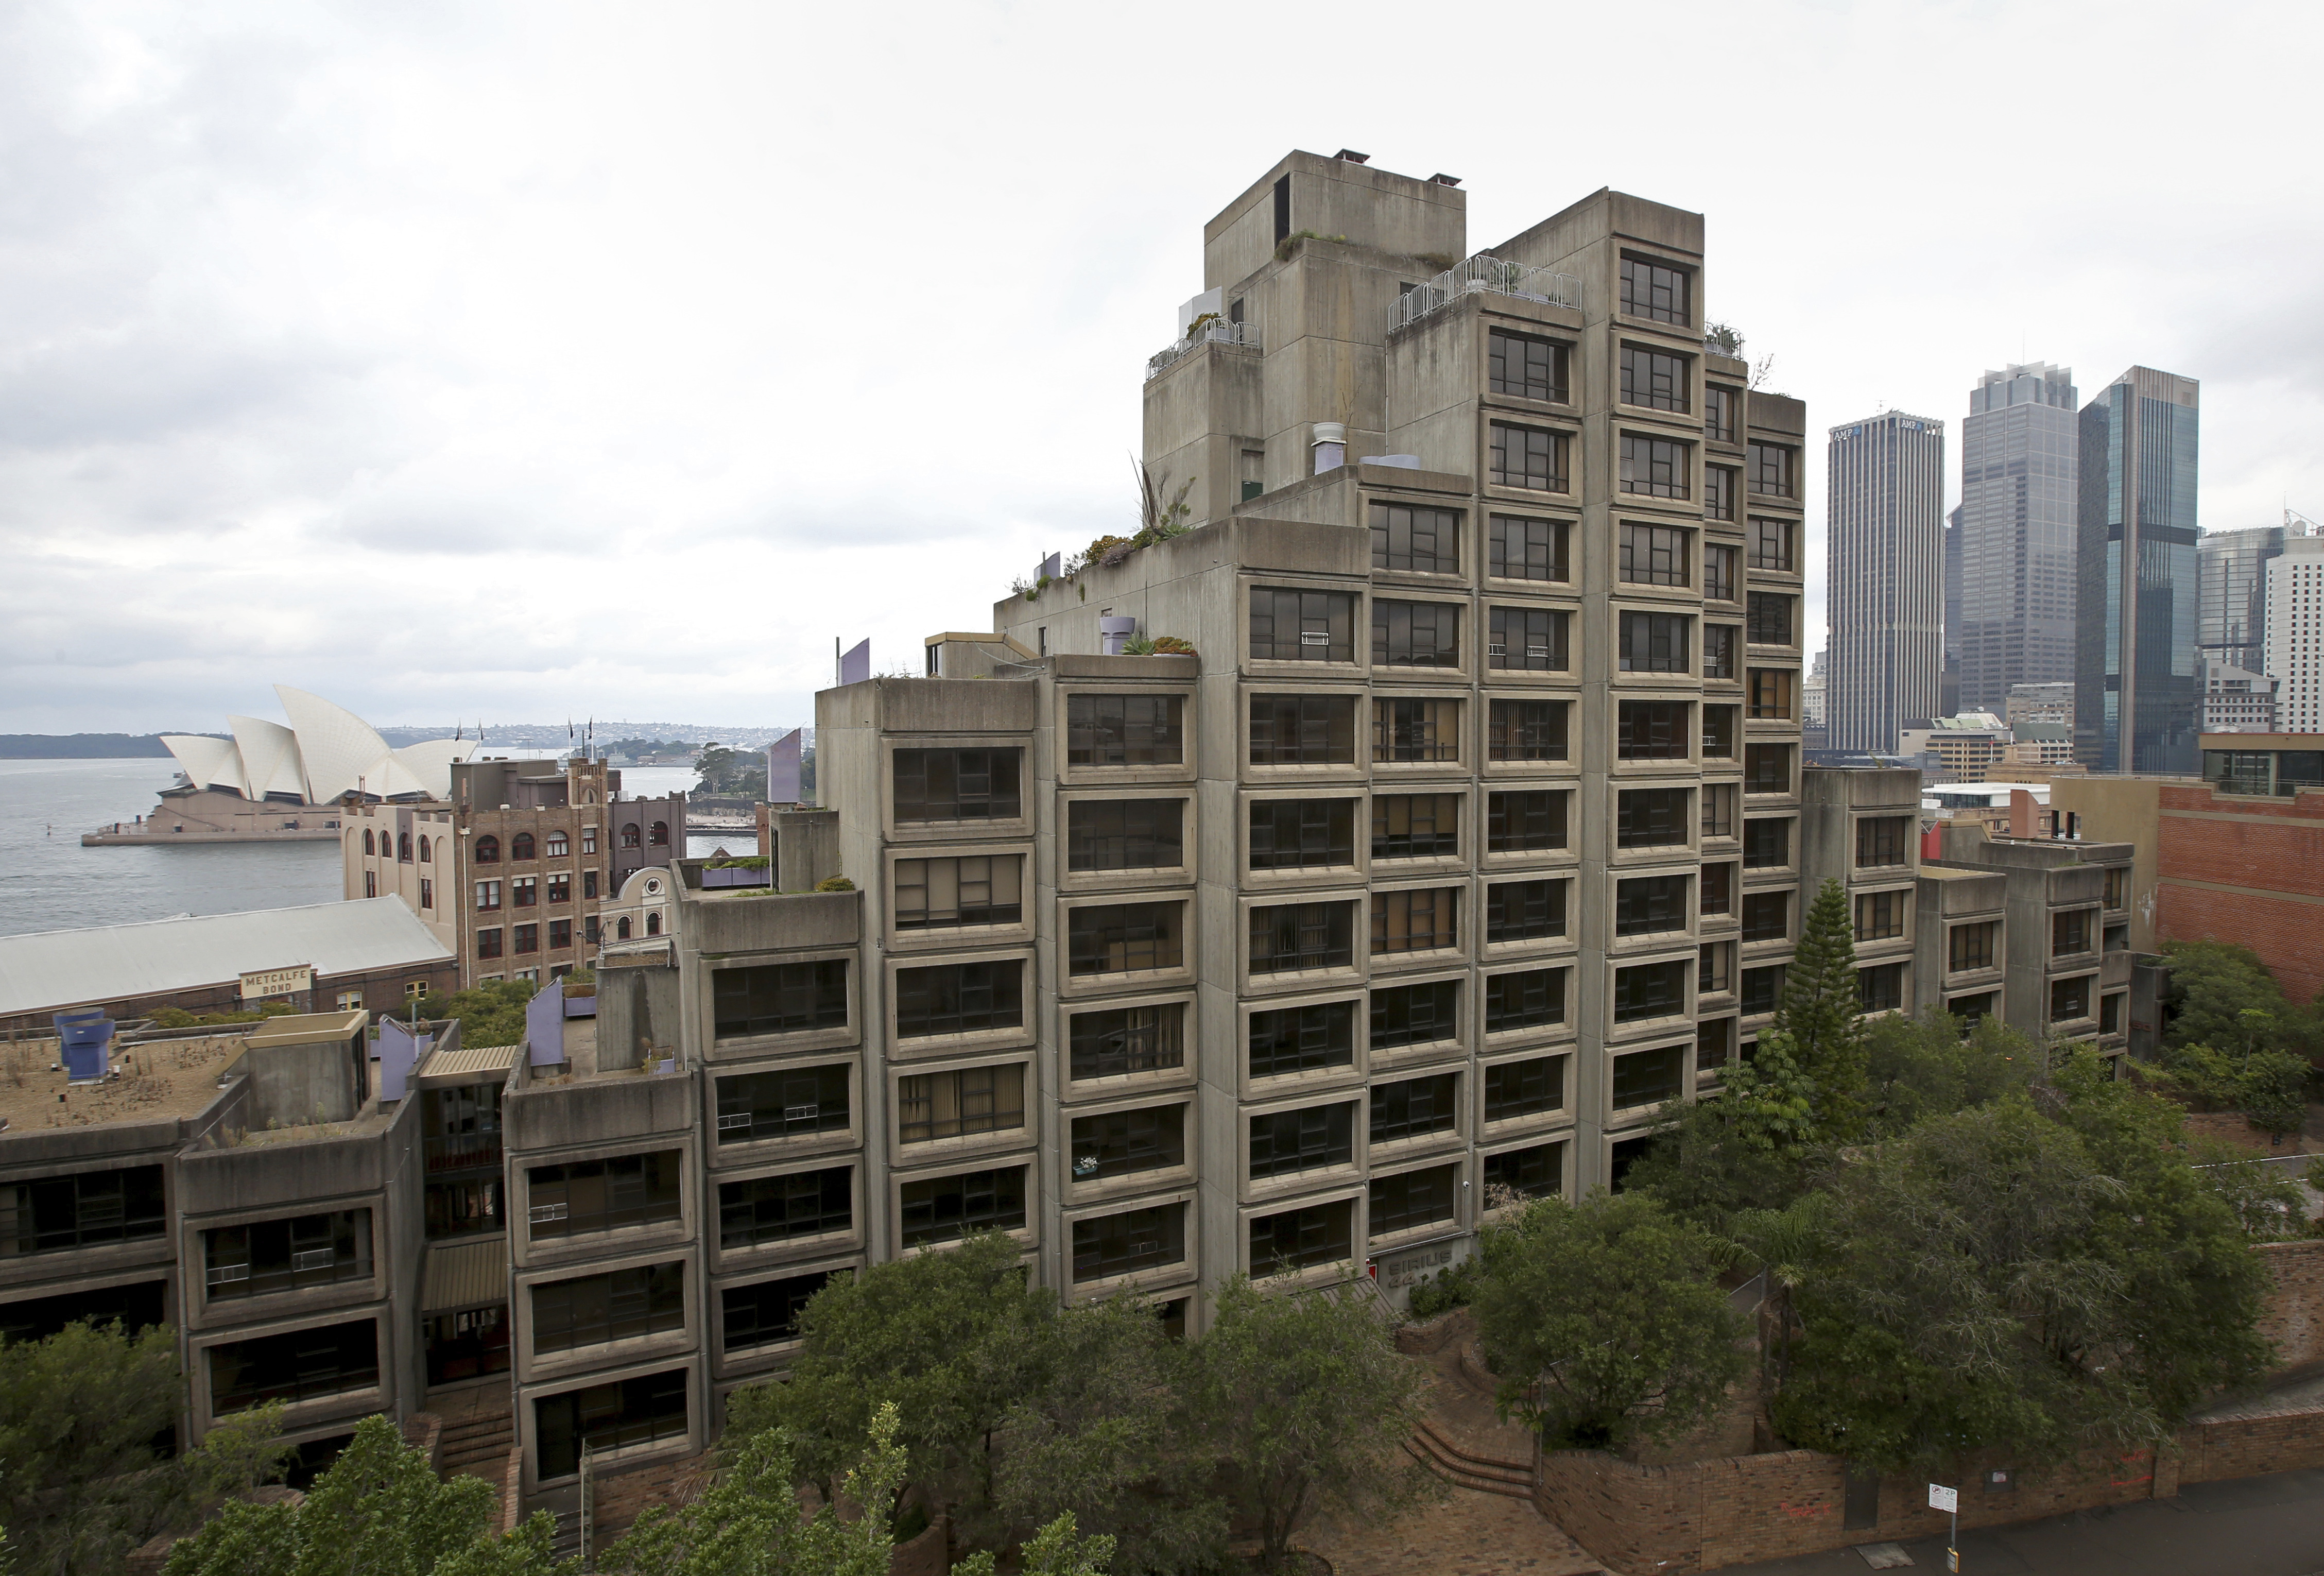 The Sirius building, constructed in the Brutalist style, overlooks the harbor and Opera House in Sydney. (AAP)